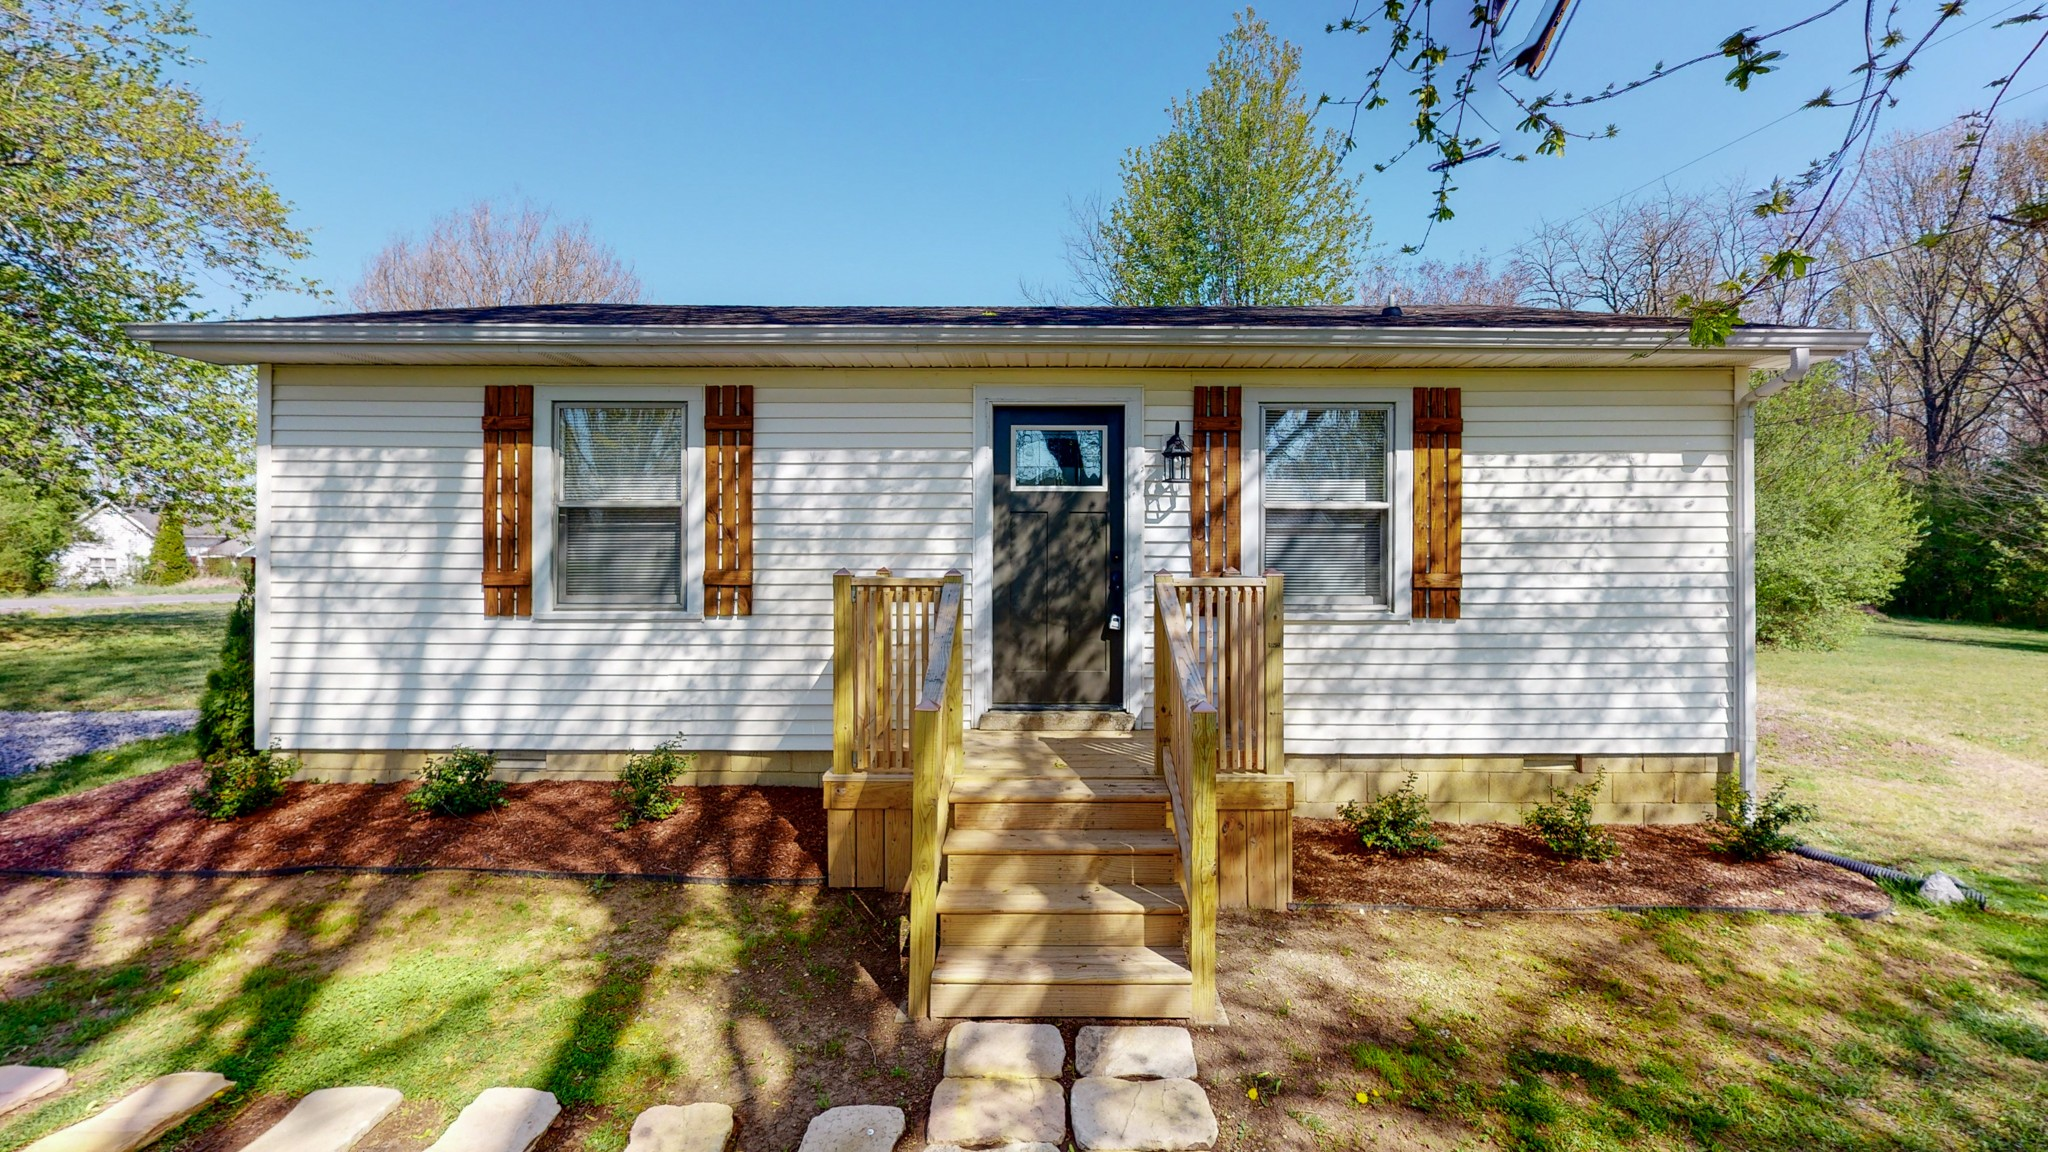 126 New Deal Potts Rd Property Photo - Cottontown, TN real estate listing